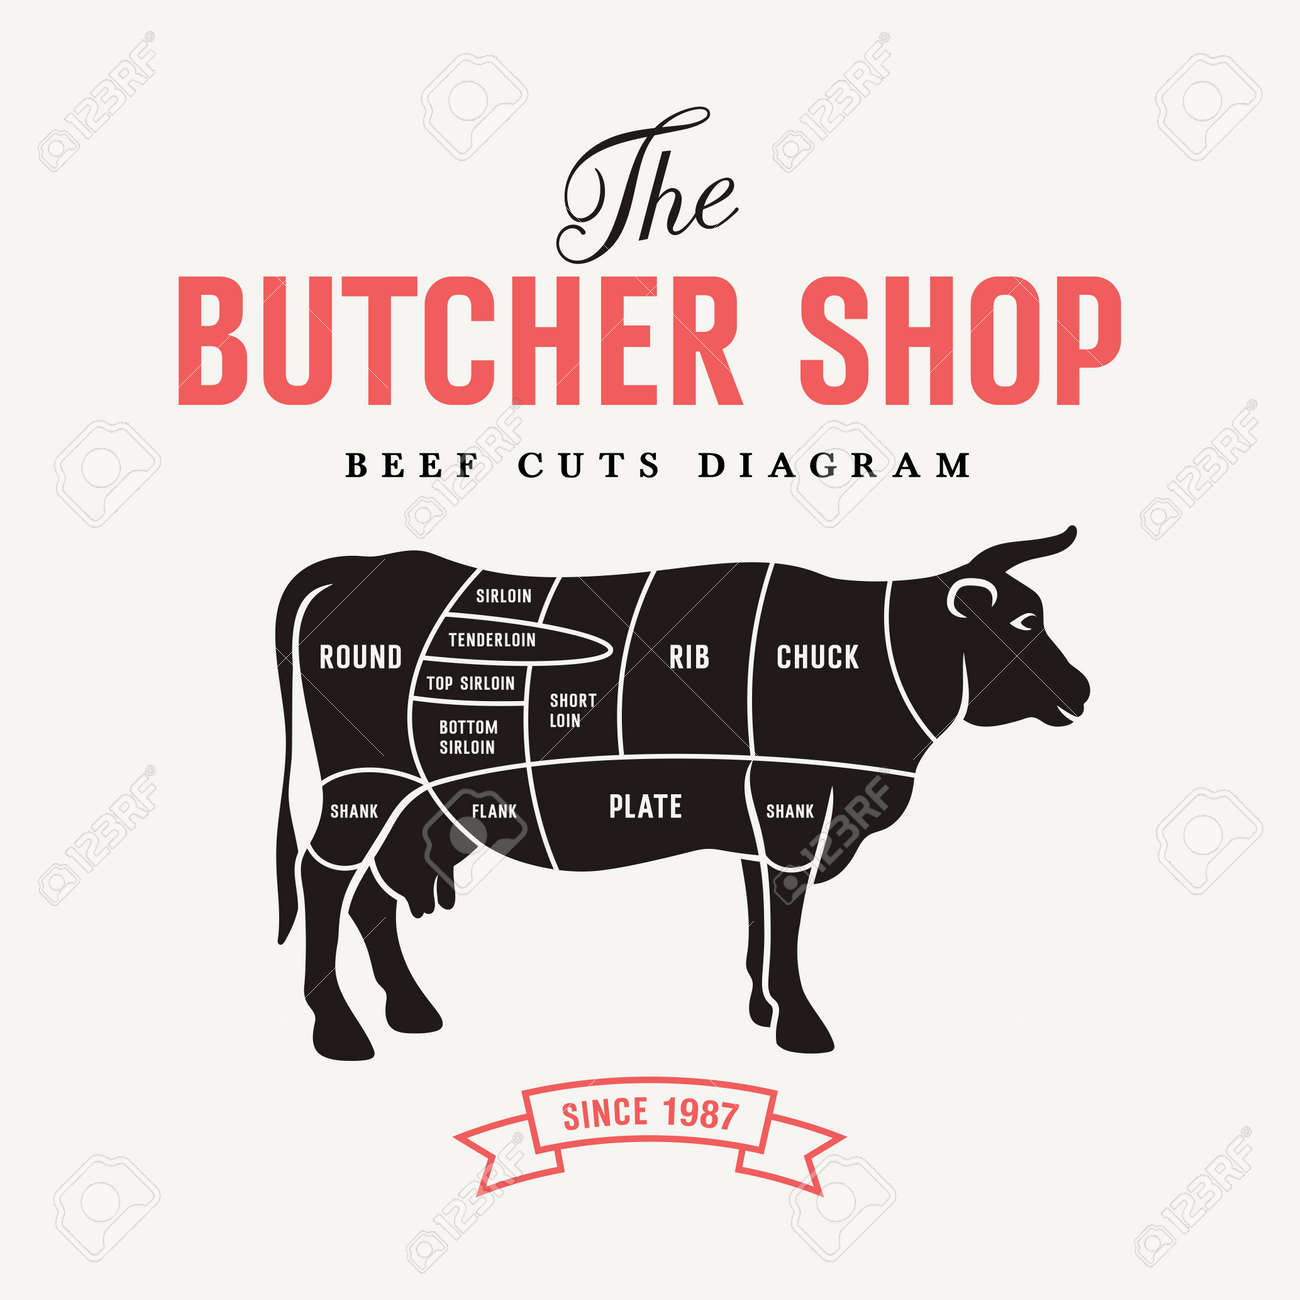 Beef cuts diagram vector illustration for your design royalty free beef cuts diagram vector illustration for your design imagens 33654609 ccuart Images